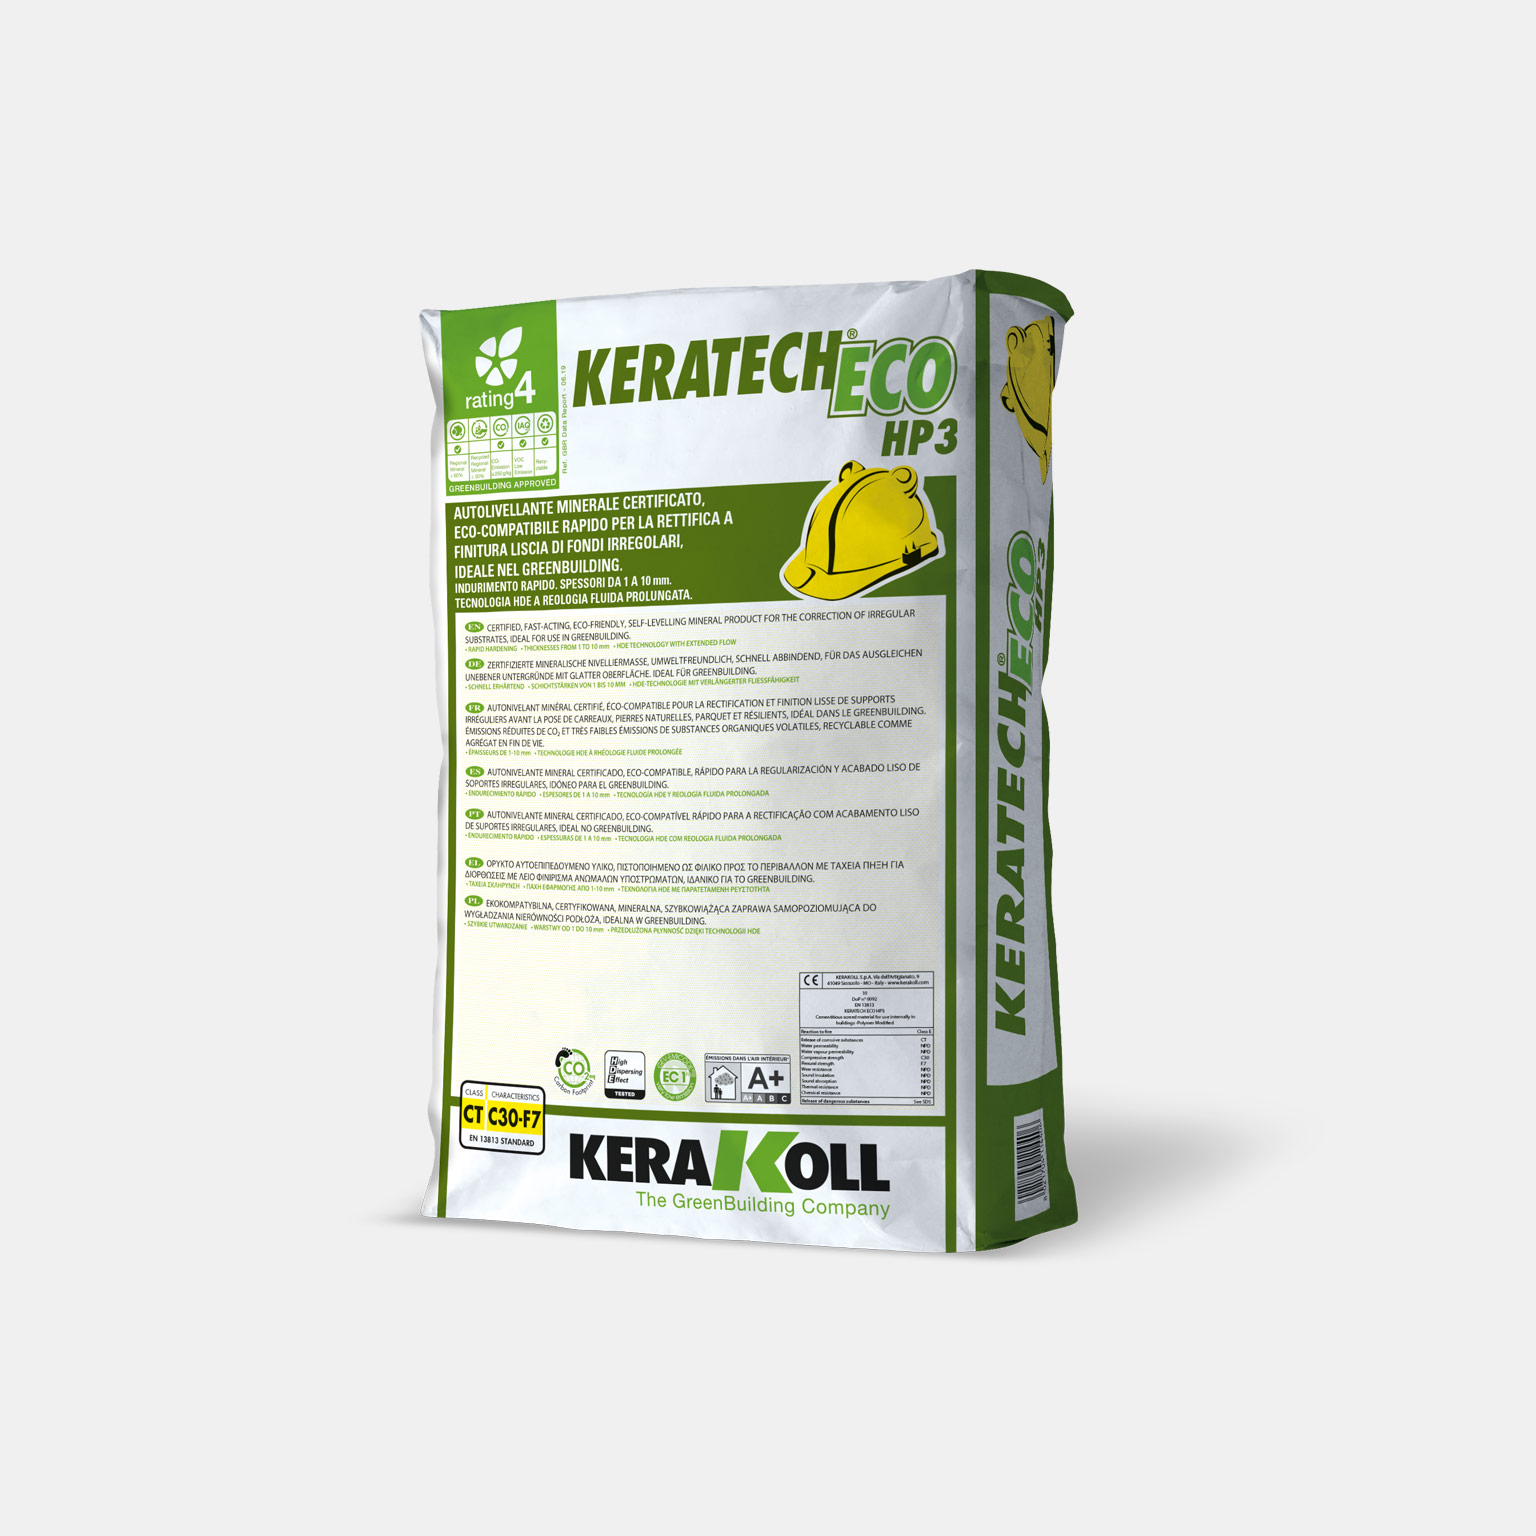 Keratech Eco HP3 - immagine pack